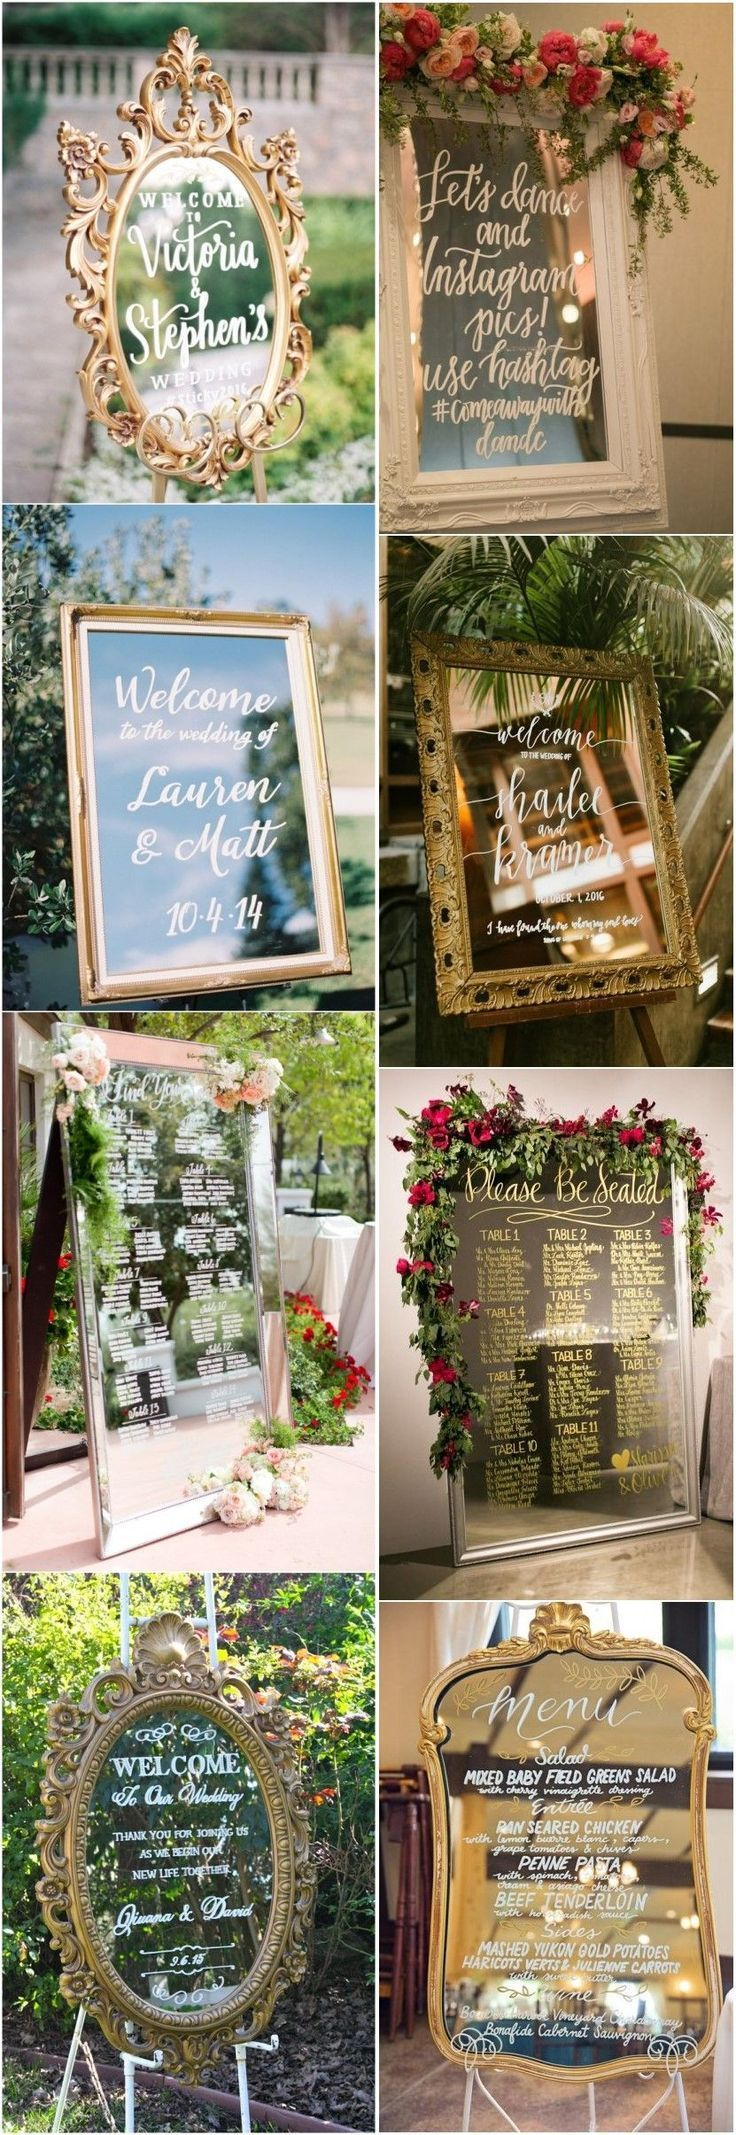 20 ways to use wedding mirror signs on your big day! – Yes I Do!!!